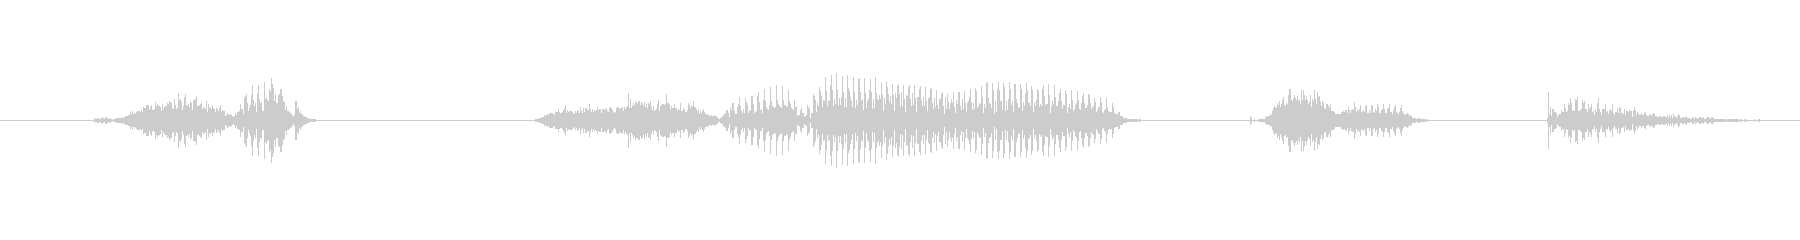 Well, that's a little (boy, boy)'s unreproduced waveform